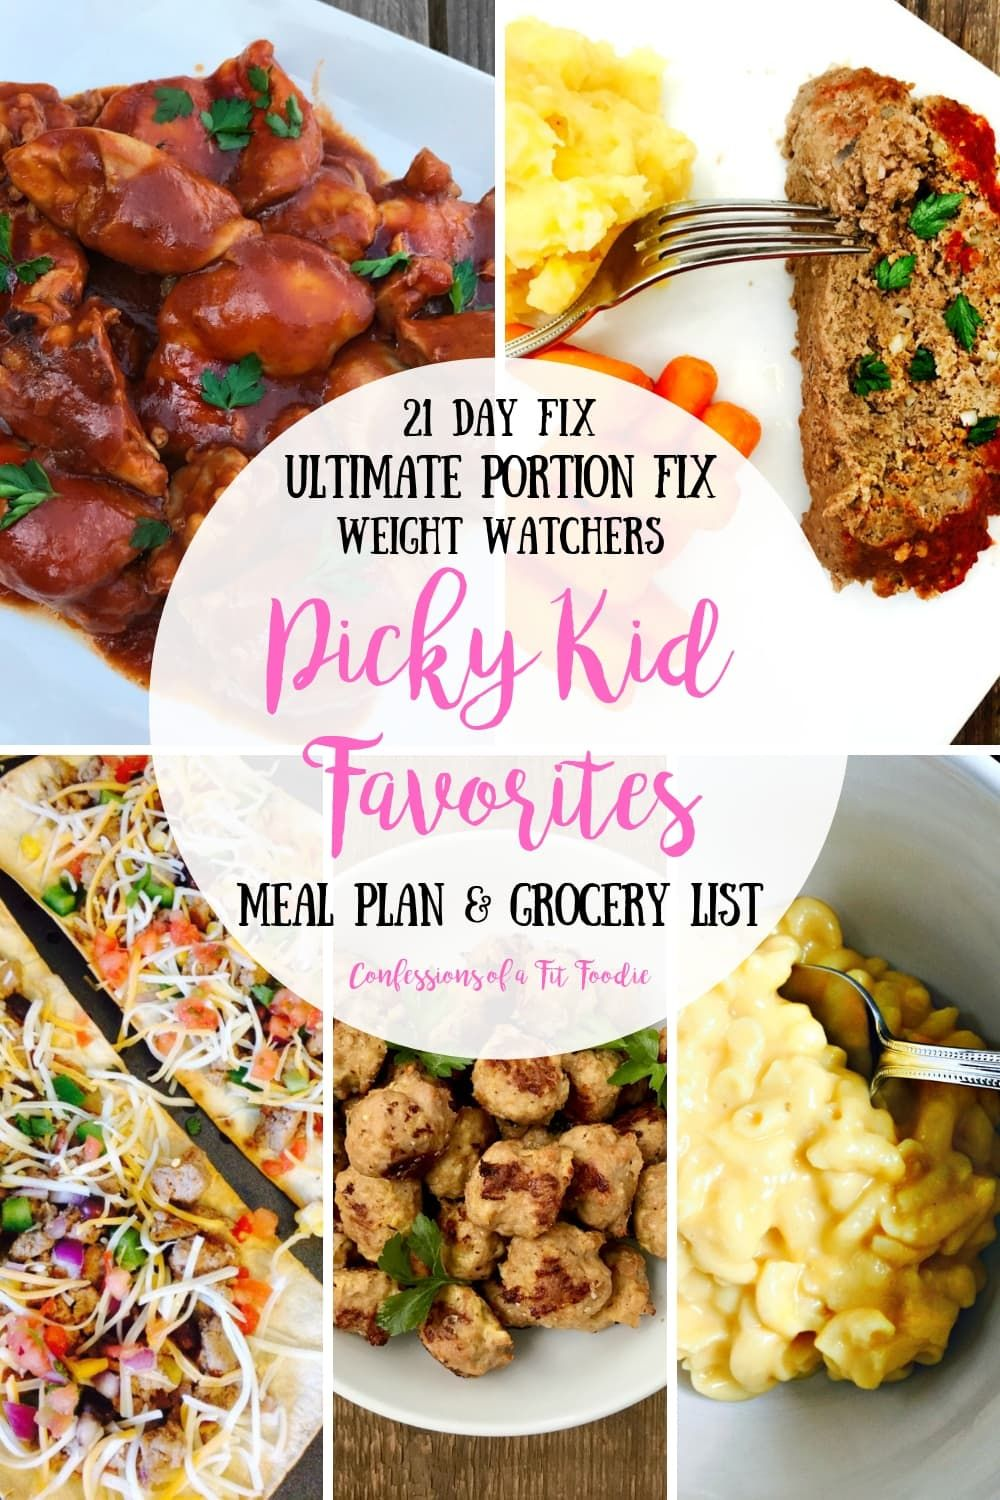 Need a Kid Friendly Meal Plan while you follow the 21 Day Fix or Weight Watchers? Look no further! These are some of the top picky kid favorites from other readers and also in our house!21 Day Fix | Ultimate Portion Fix | Weight Watchers | Confessions of a Fit Foodie | Weekly Meal Plan | Picky Kid Dinners | Picky Kid Favorites | Kid Friendly | Kid Friendly Dinners| Meal Plan & Grocery List | Back to School Dinners